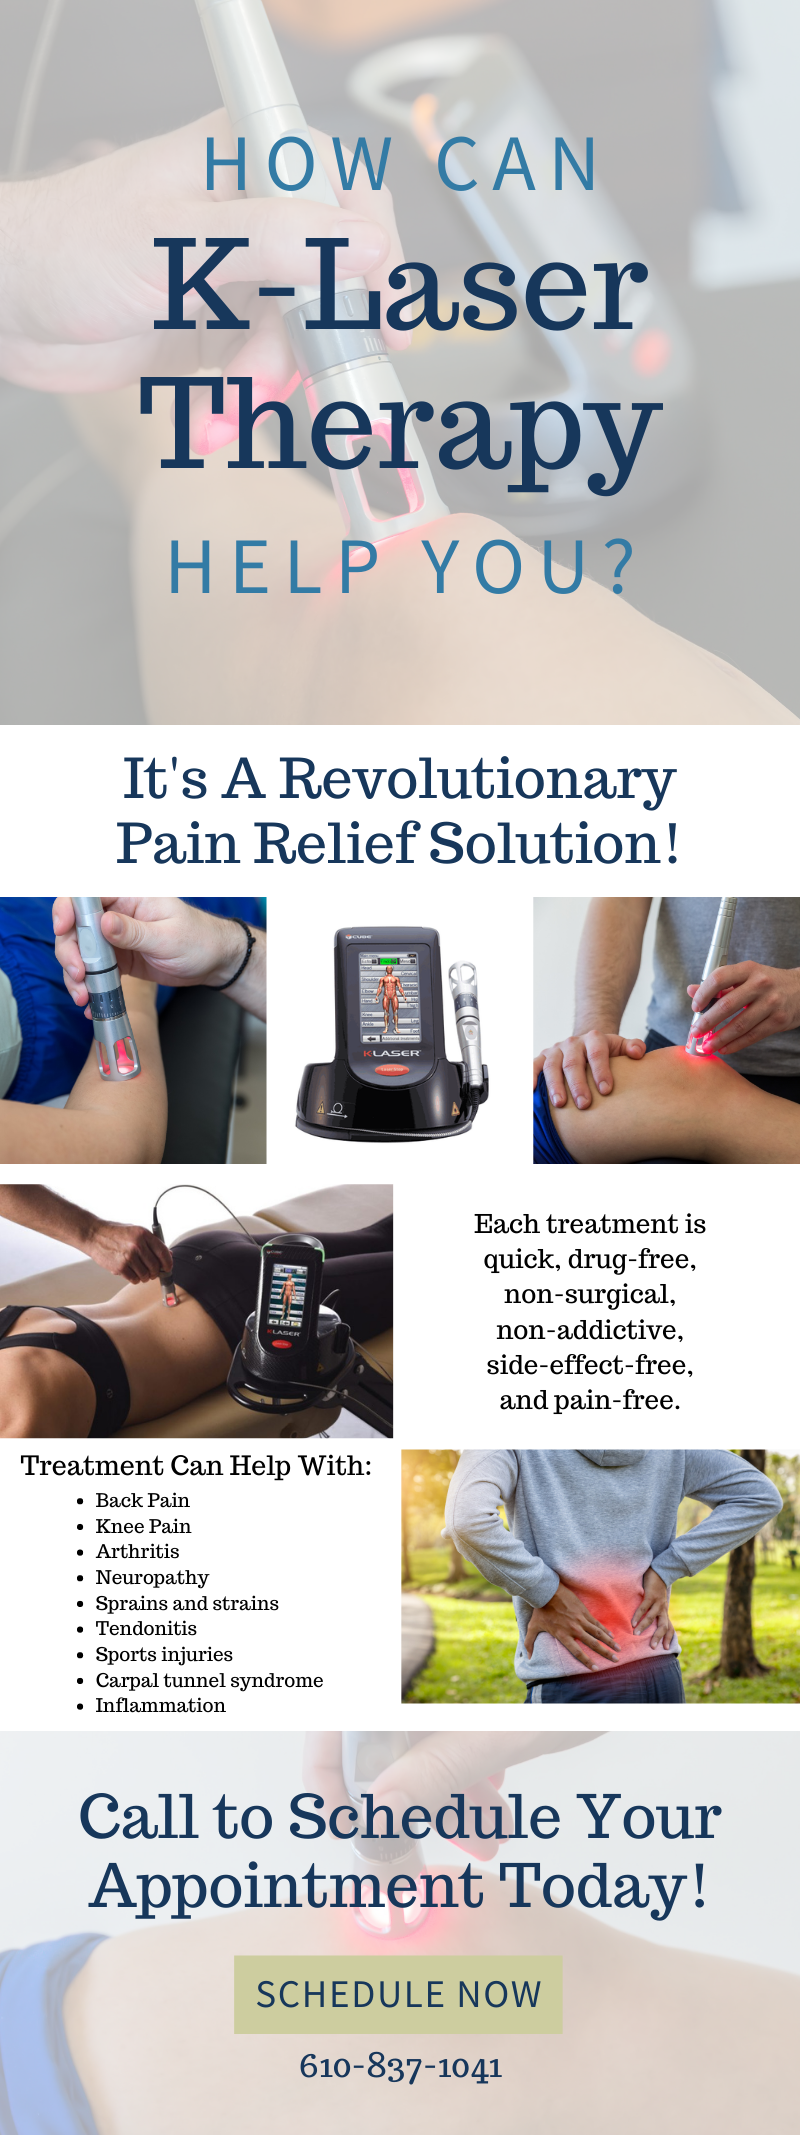 How Can K-Laser Therapy Help You? 1